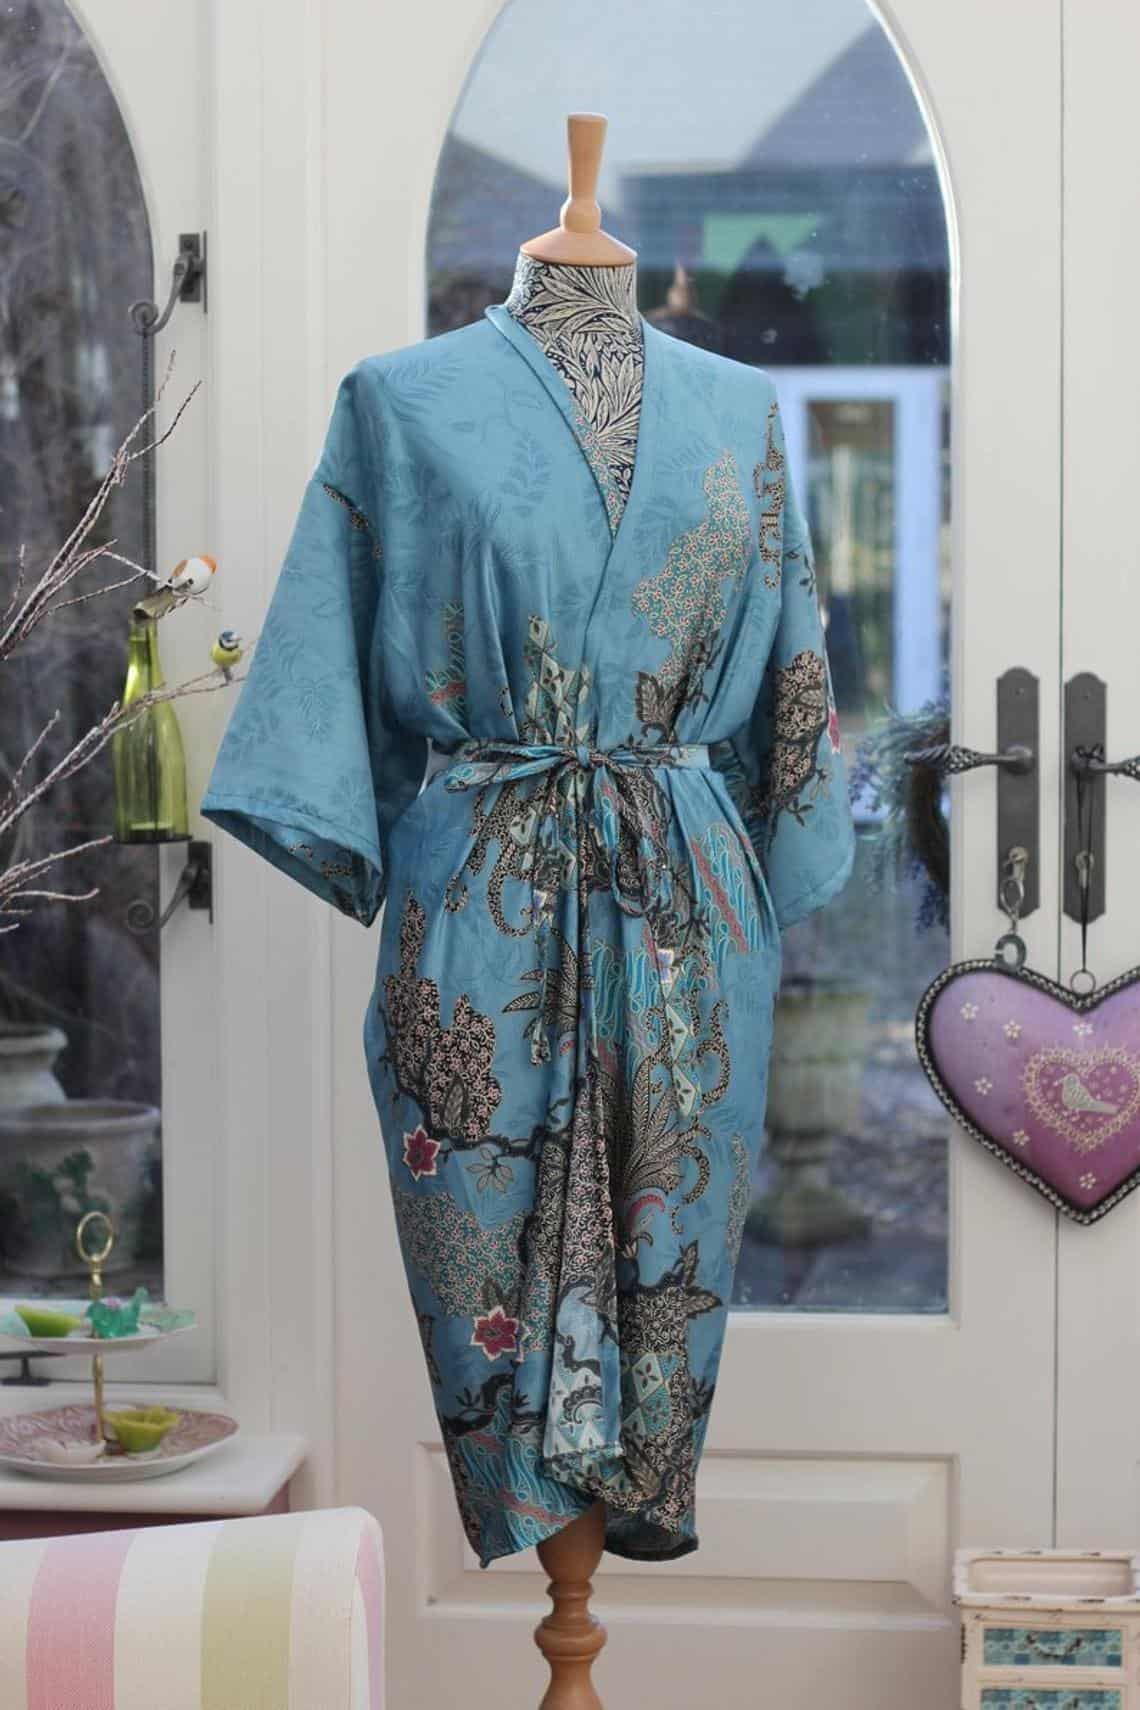 Think about retirement gifts for women? Take a look at this kimono robe